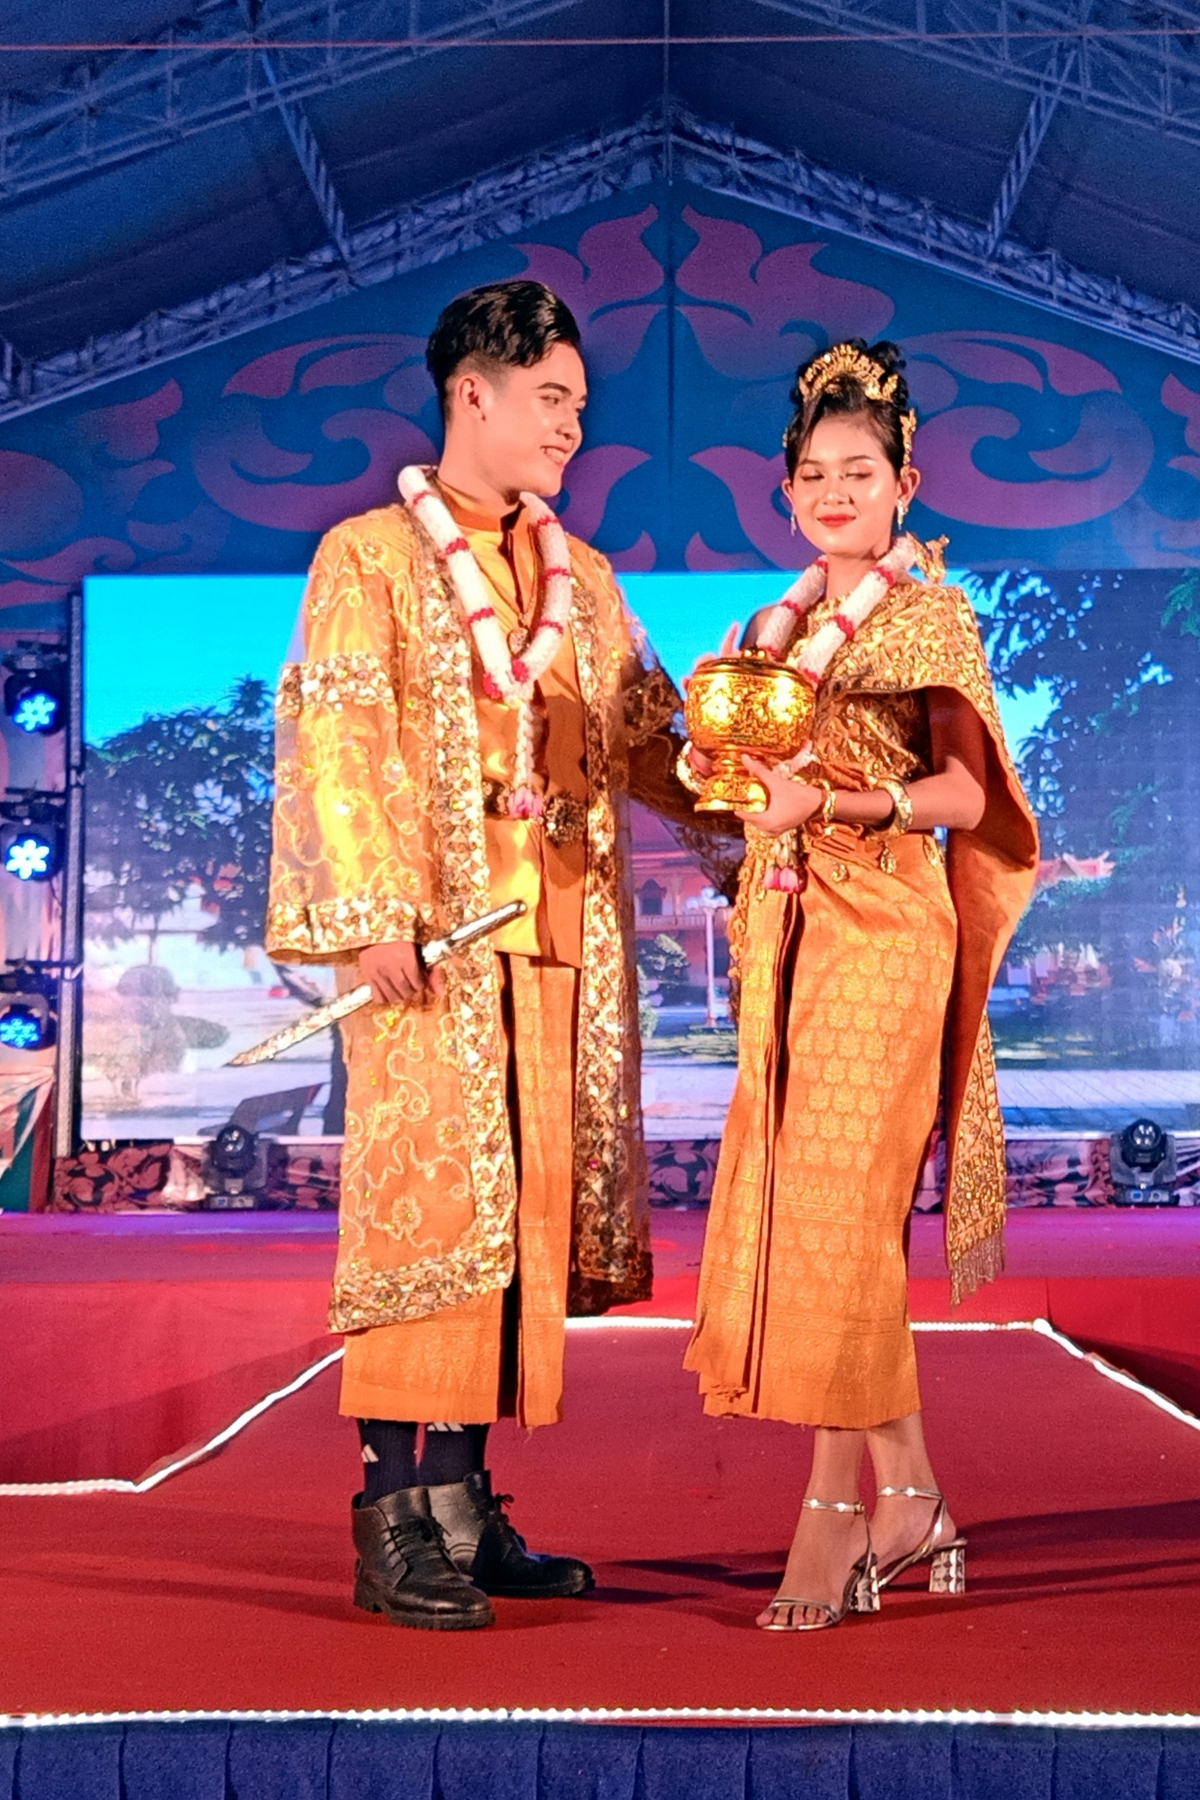 The fashion show witnesses traditional Khmer wedding outfits updated to suit a more modern style.